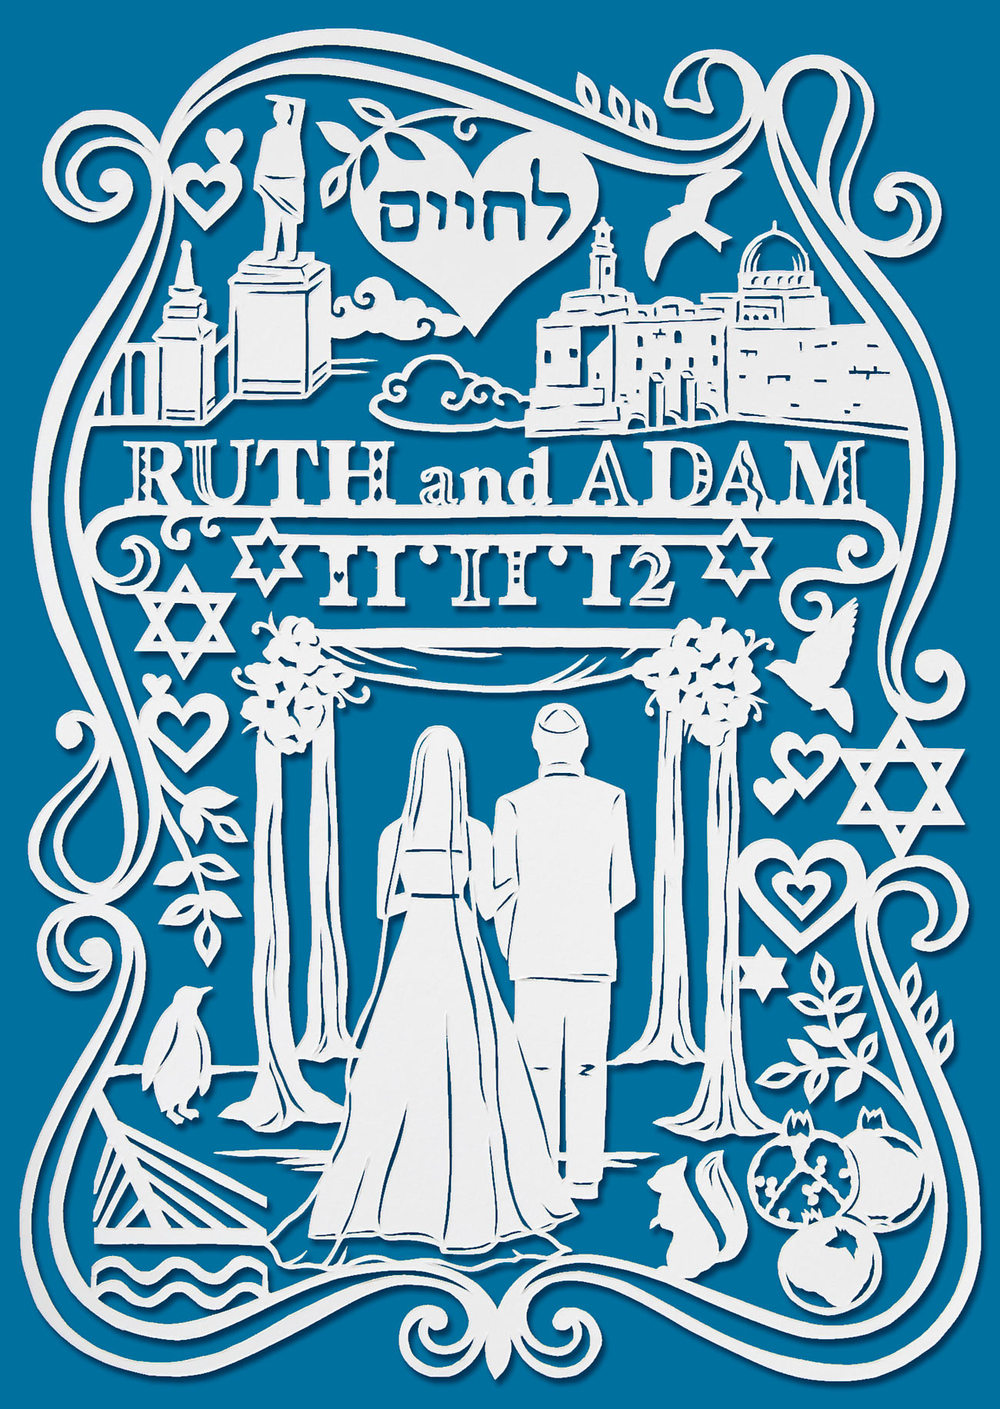 papercut illustration for anniversary, jewish wedding